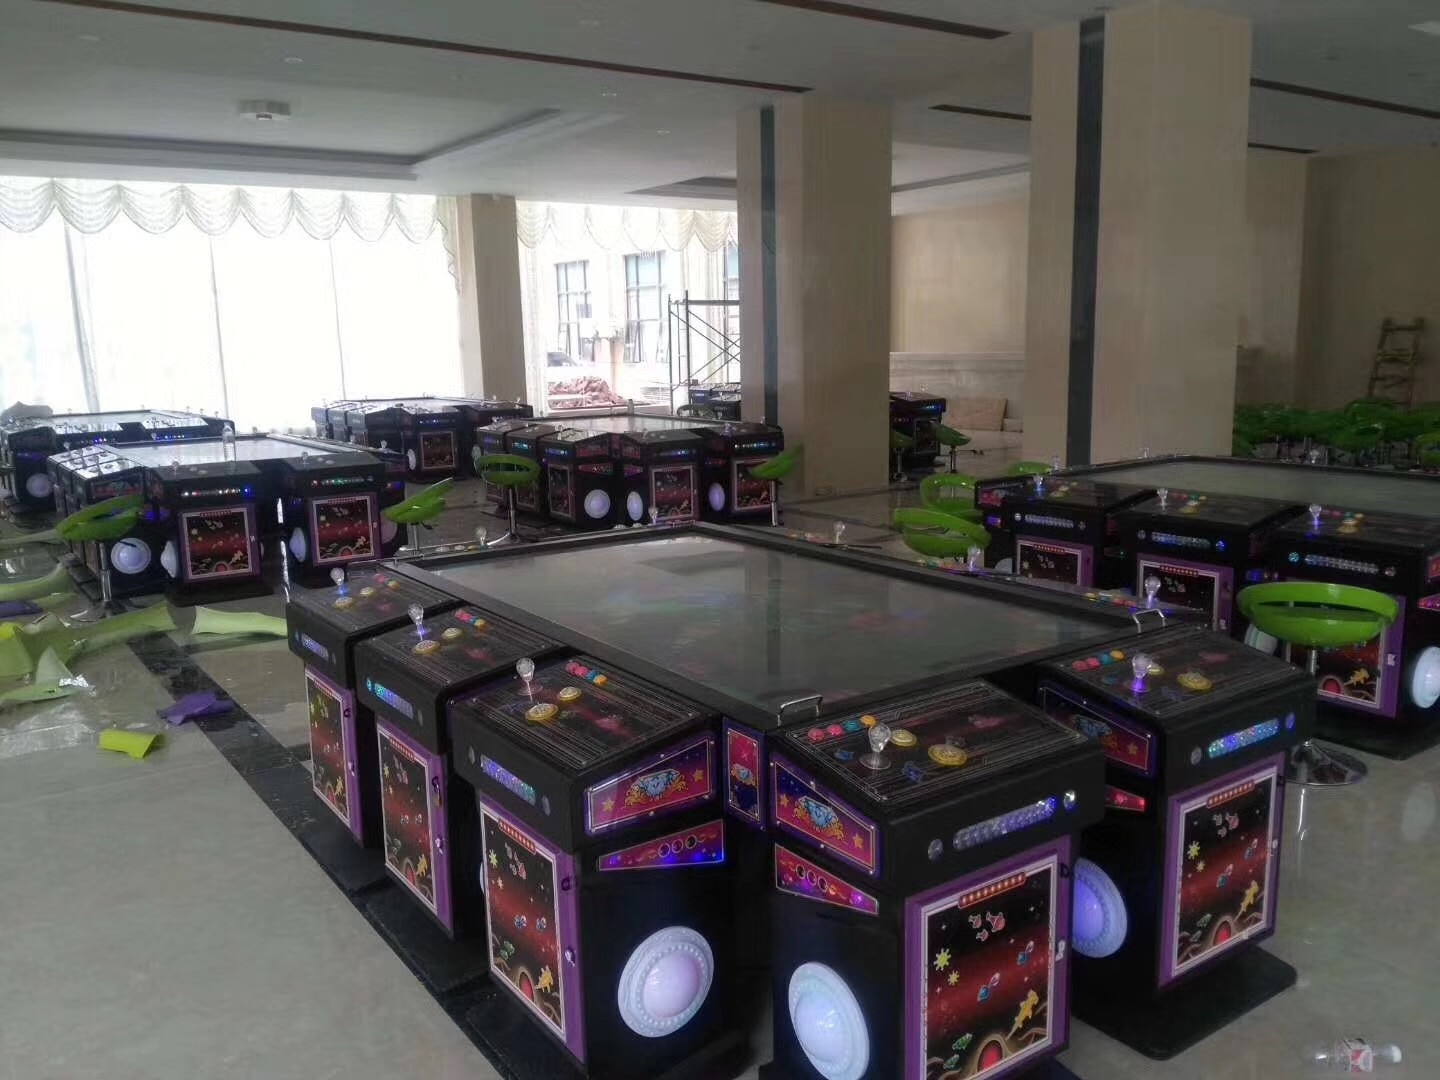 Online Fish Table Game Arcade Game Machine Video Game Phantom Insect Online Fish Table Game Arcade Game Machine Video Game Phantom Insect online fish table game